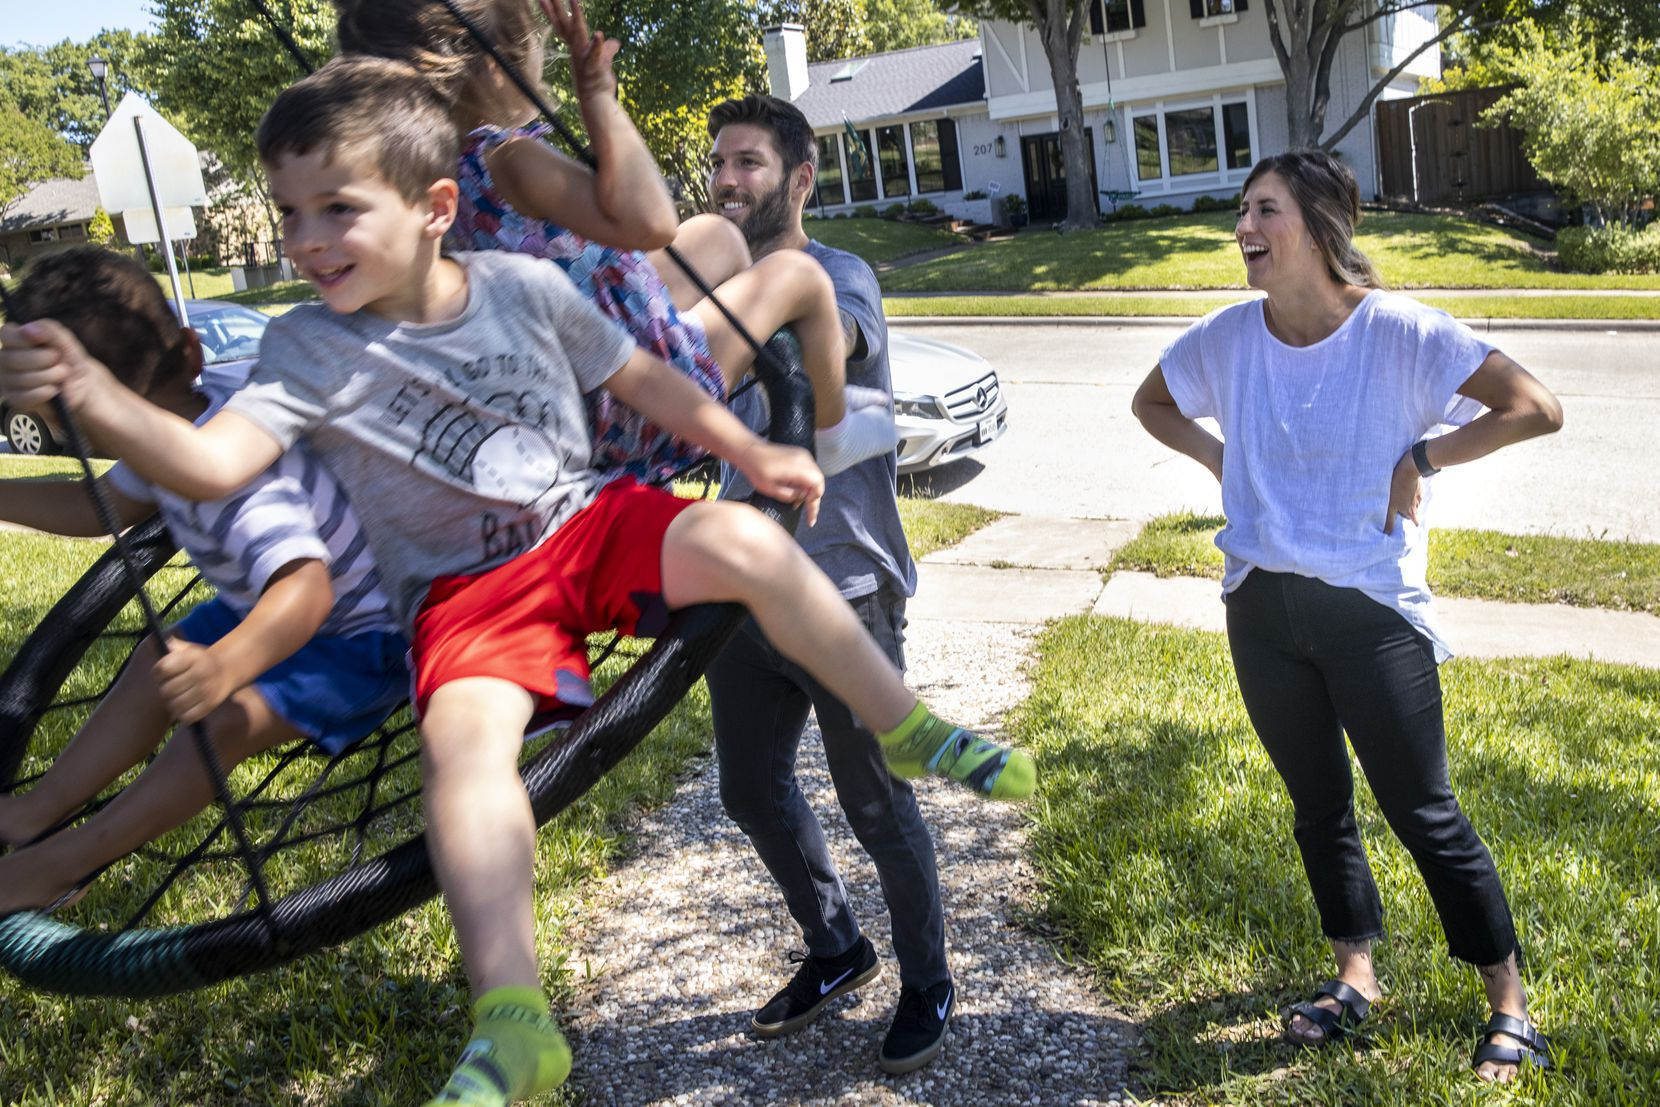 Ryan and Taylor Hollingshead play with their children (from left), their 2-year-old foster son, 4-year-old son Huck and 3-year-old daughter Quinn, on a circular swing at their home in Richardson.